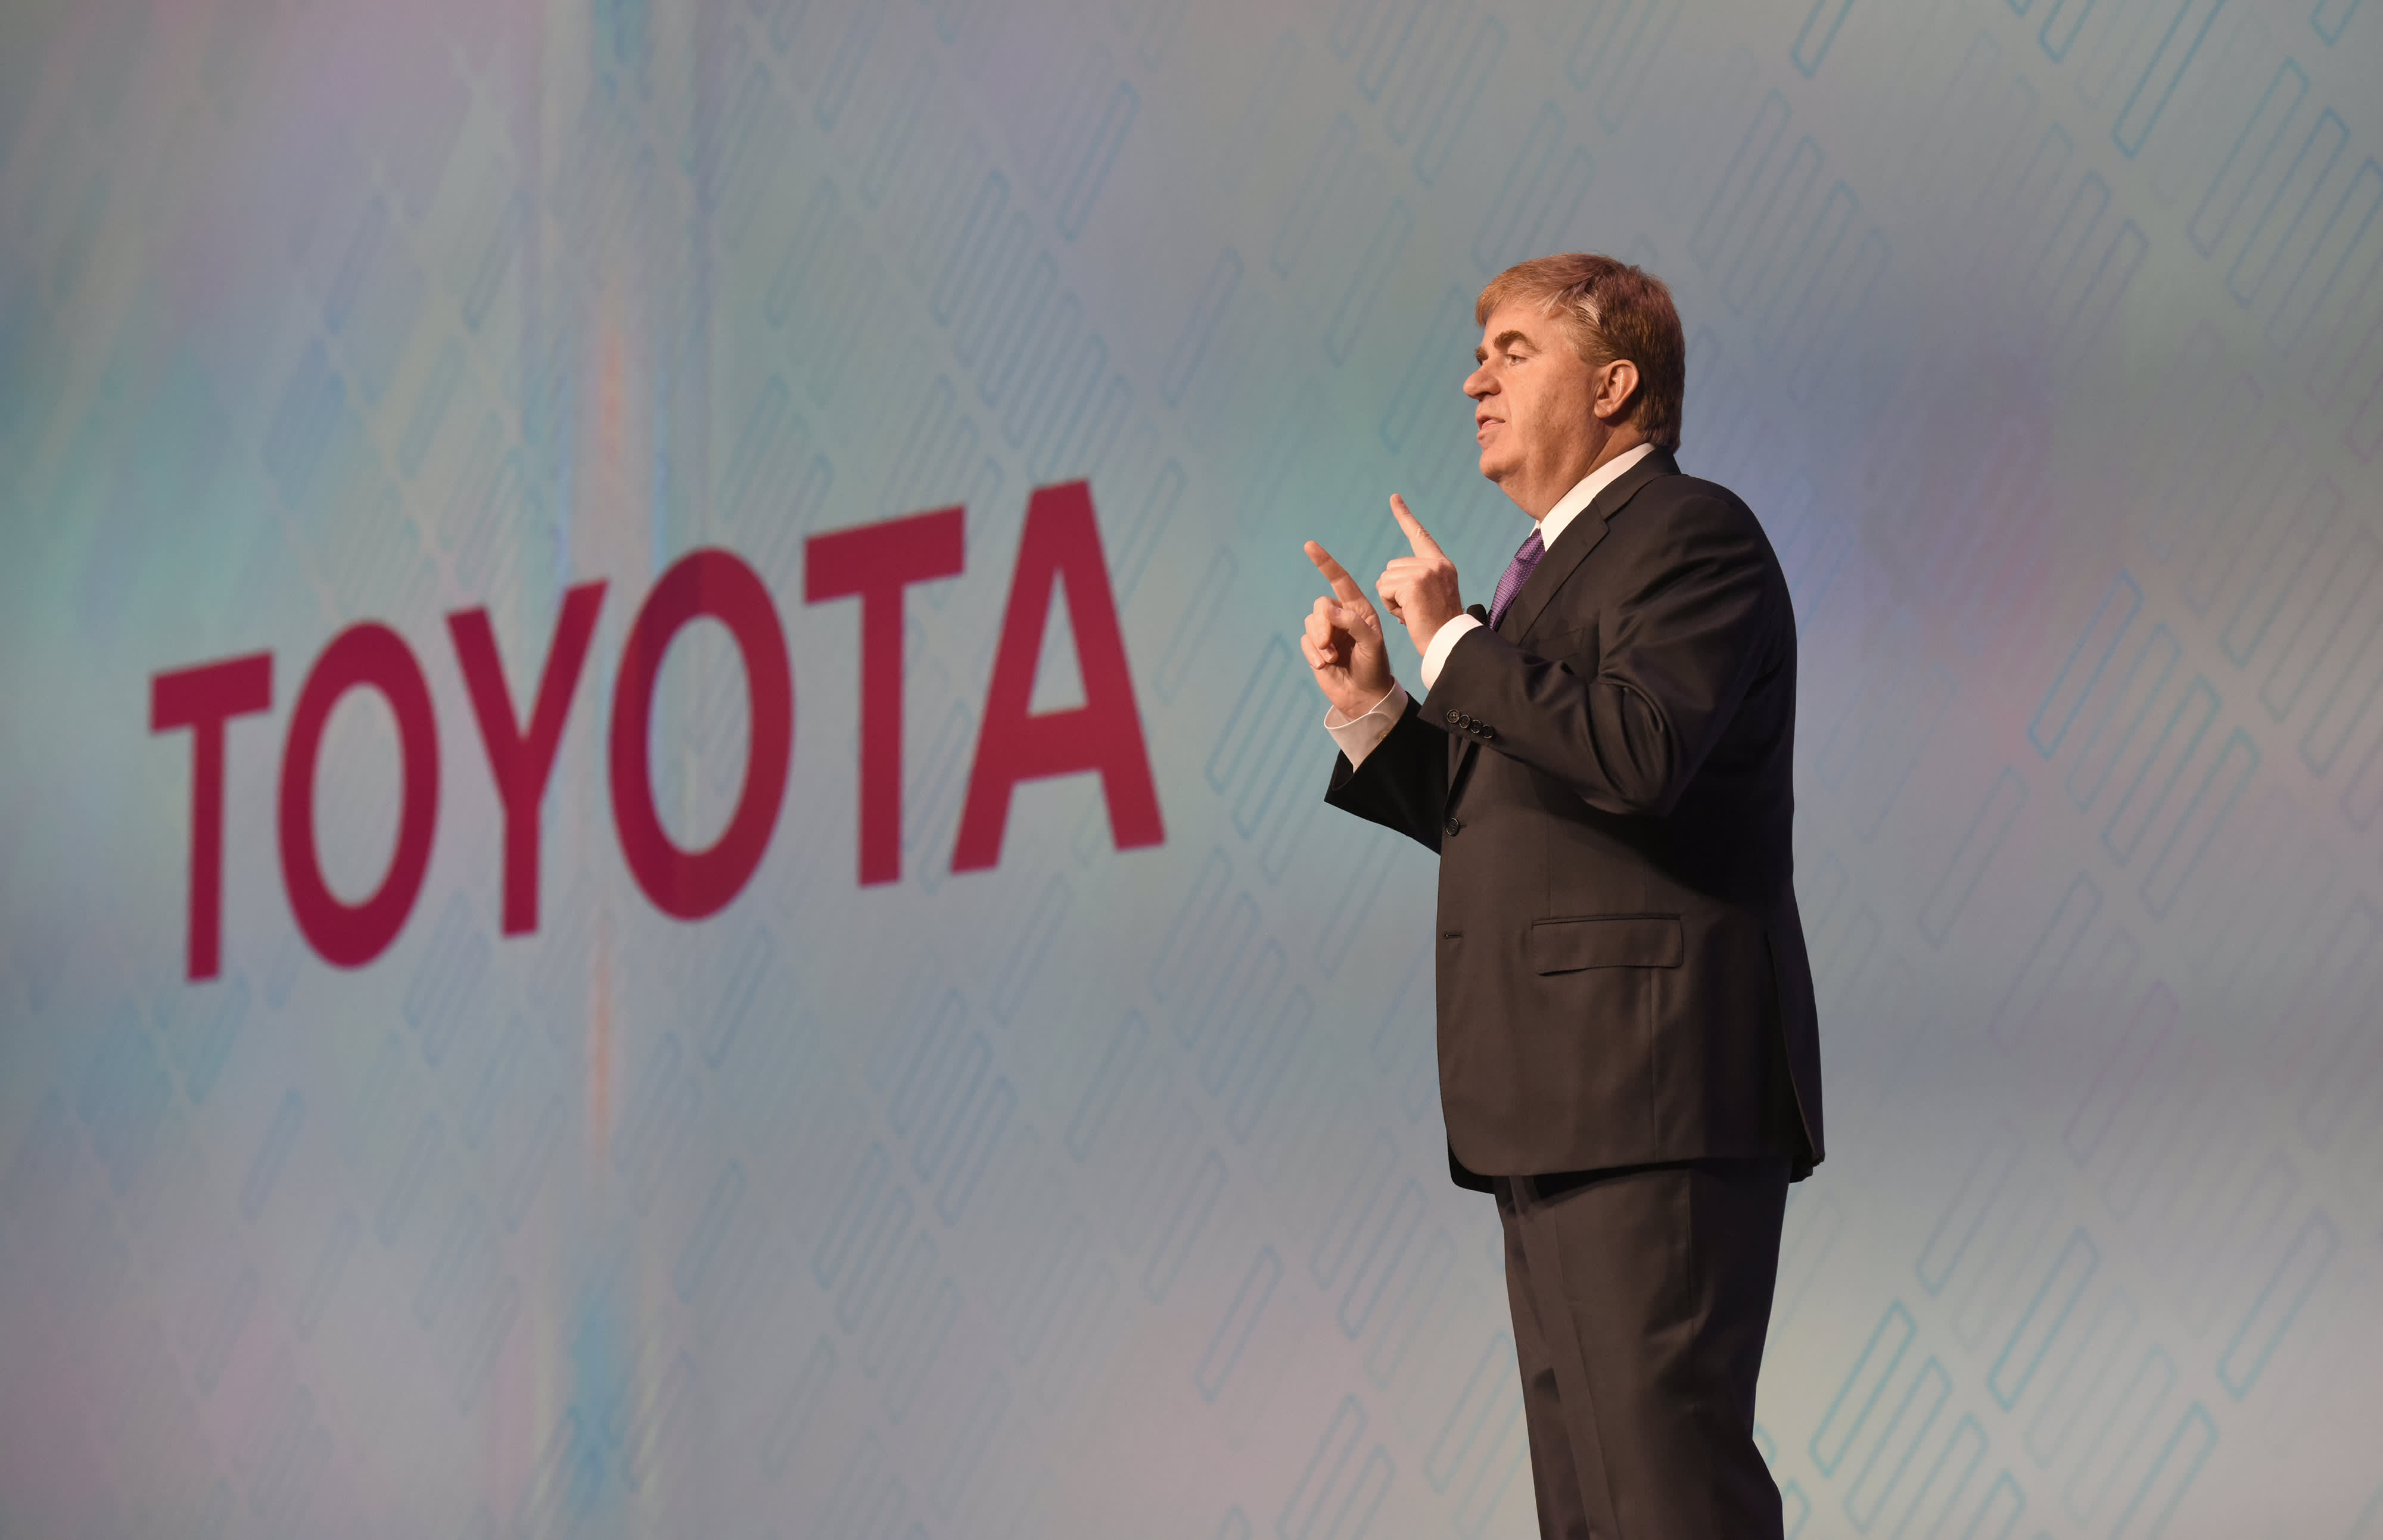 Toyota estimates May U.S. auto sales were 'beyond expectations' but still down due to coronavirus